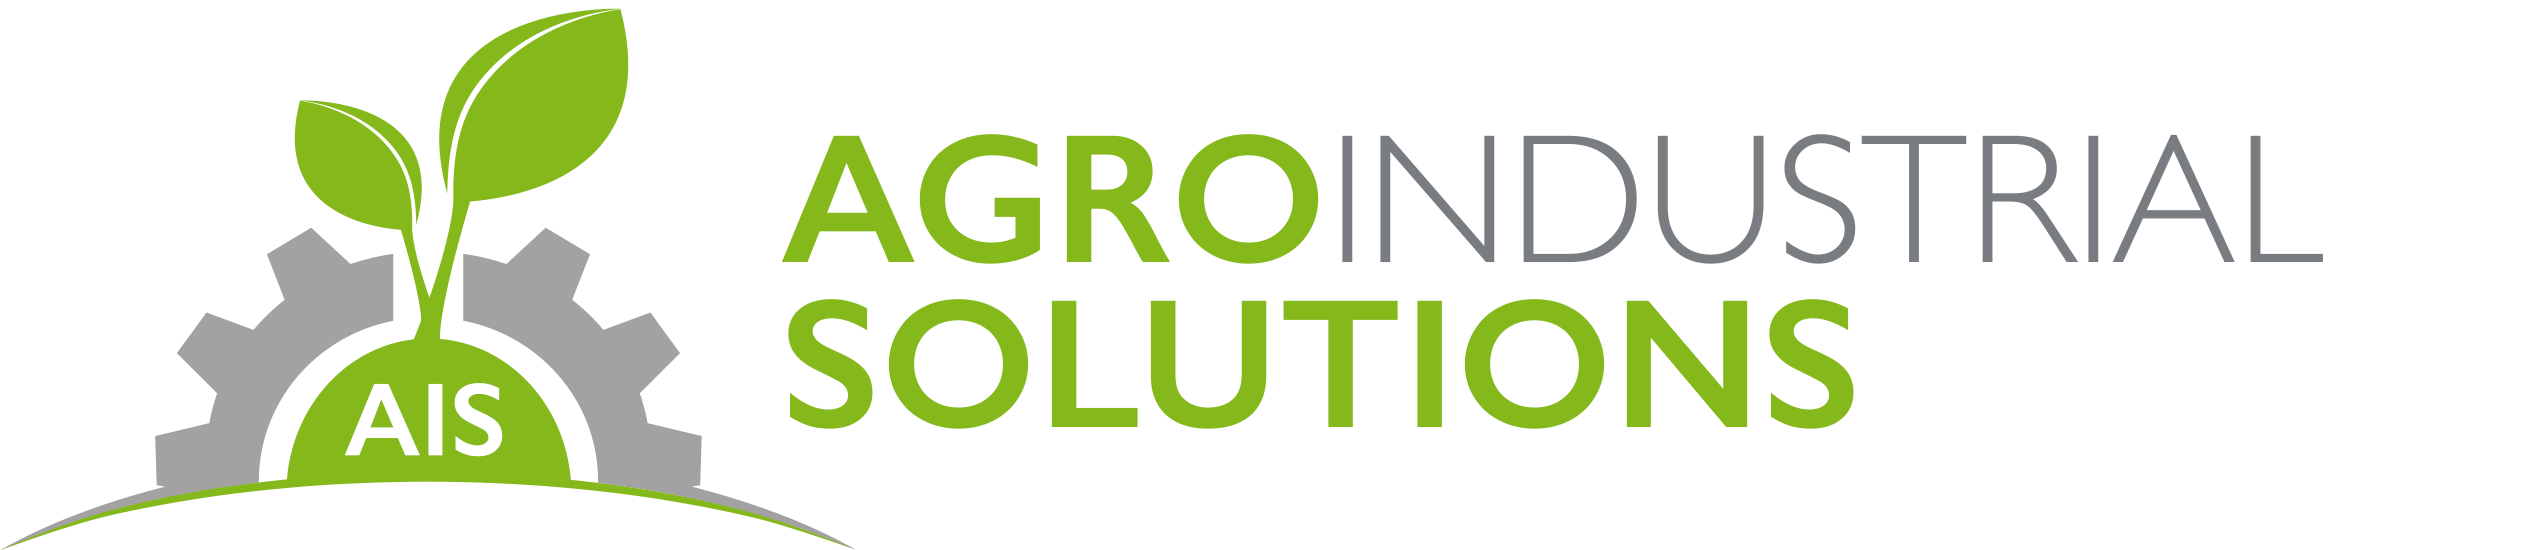 Agroindustrial Solutions